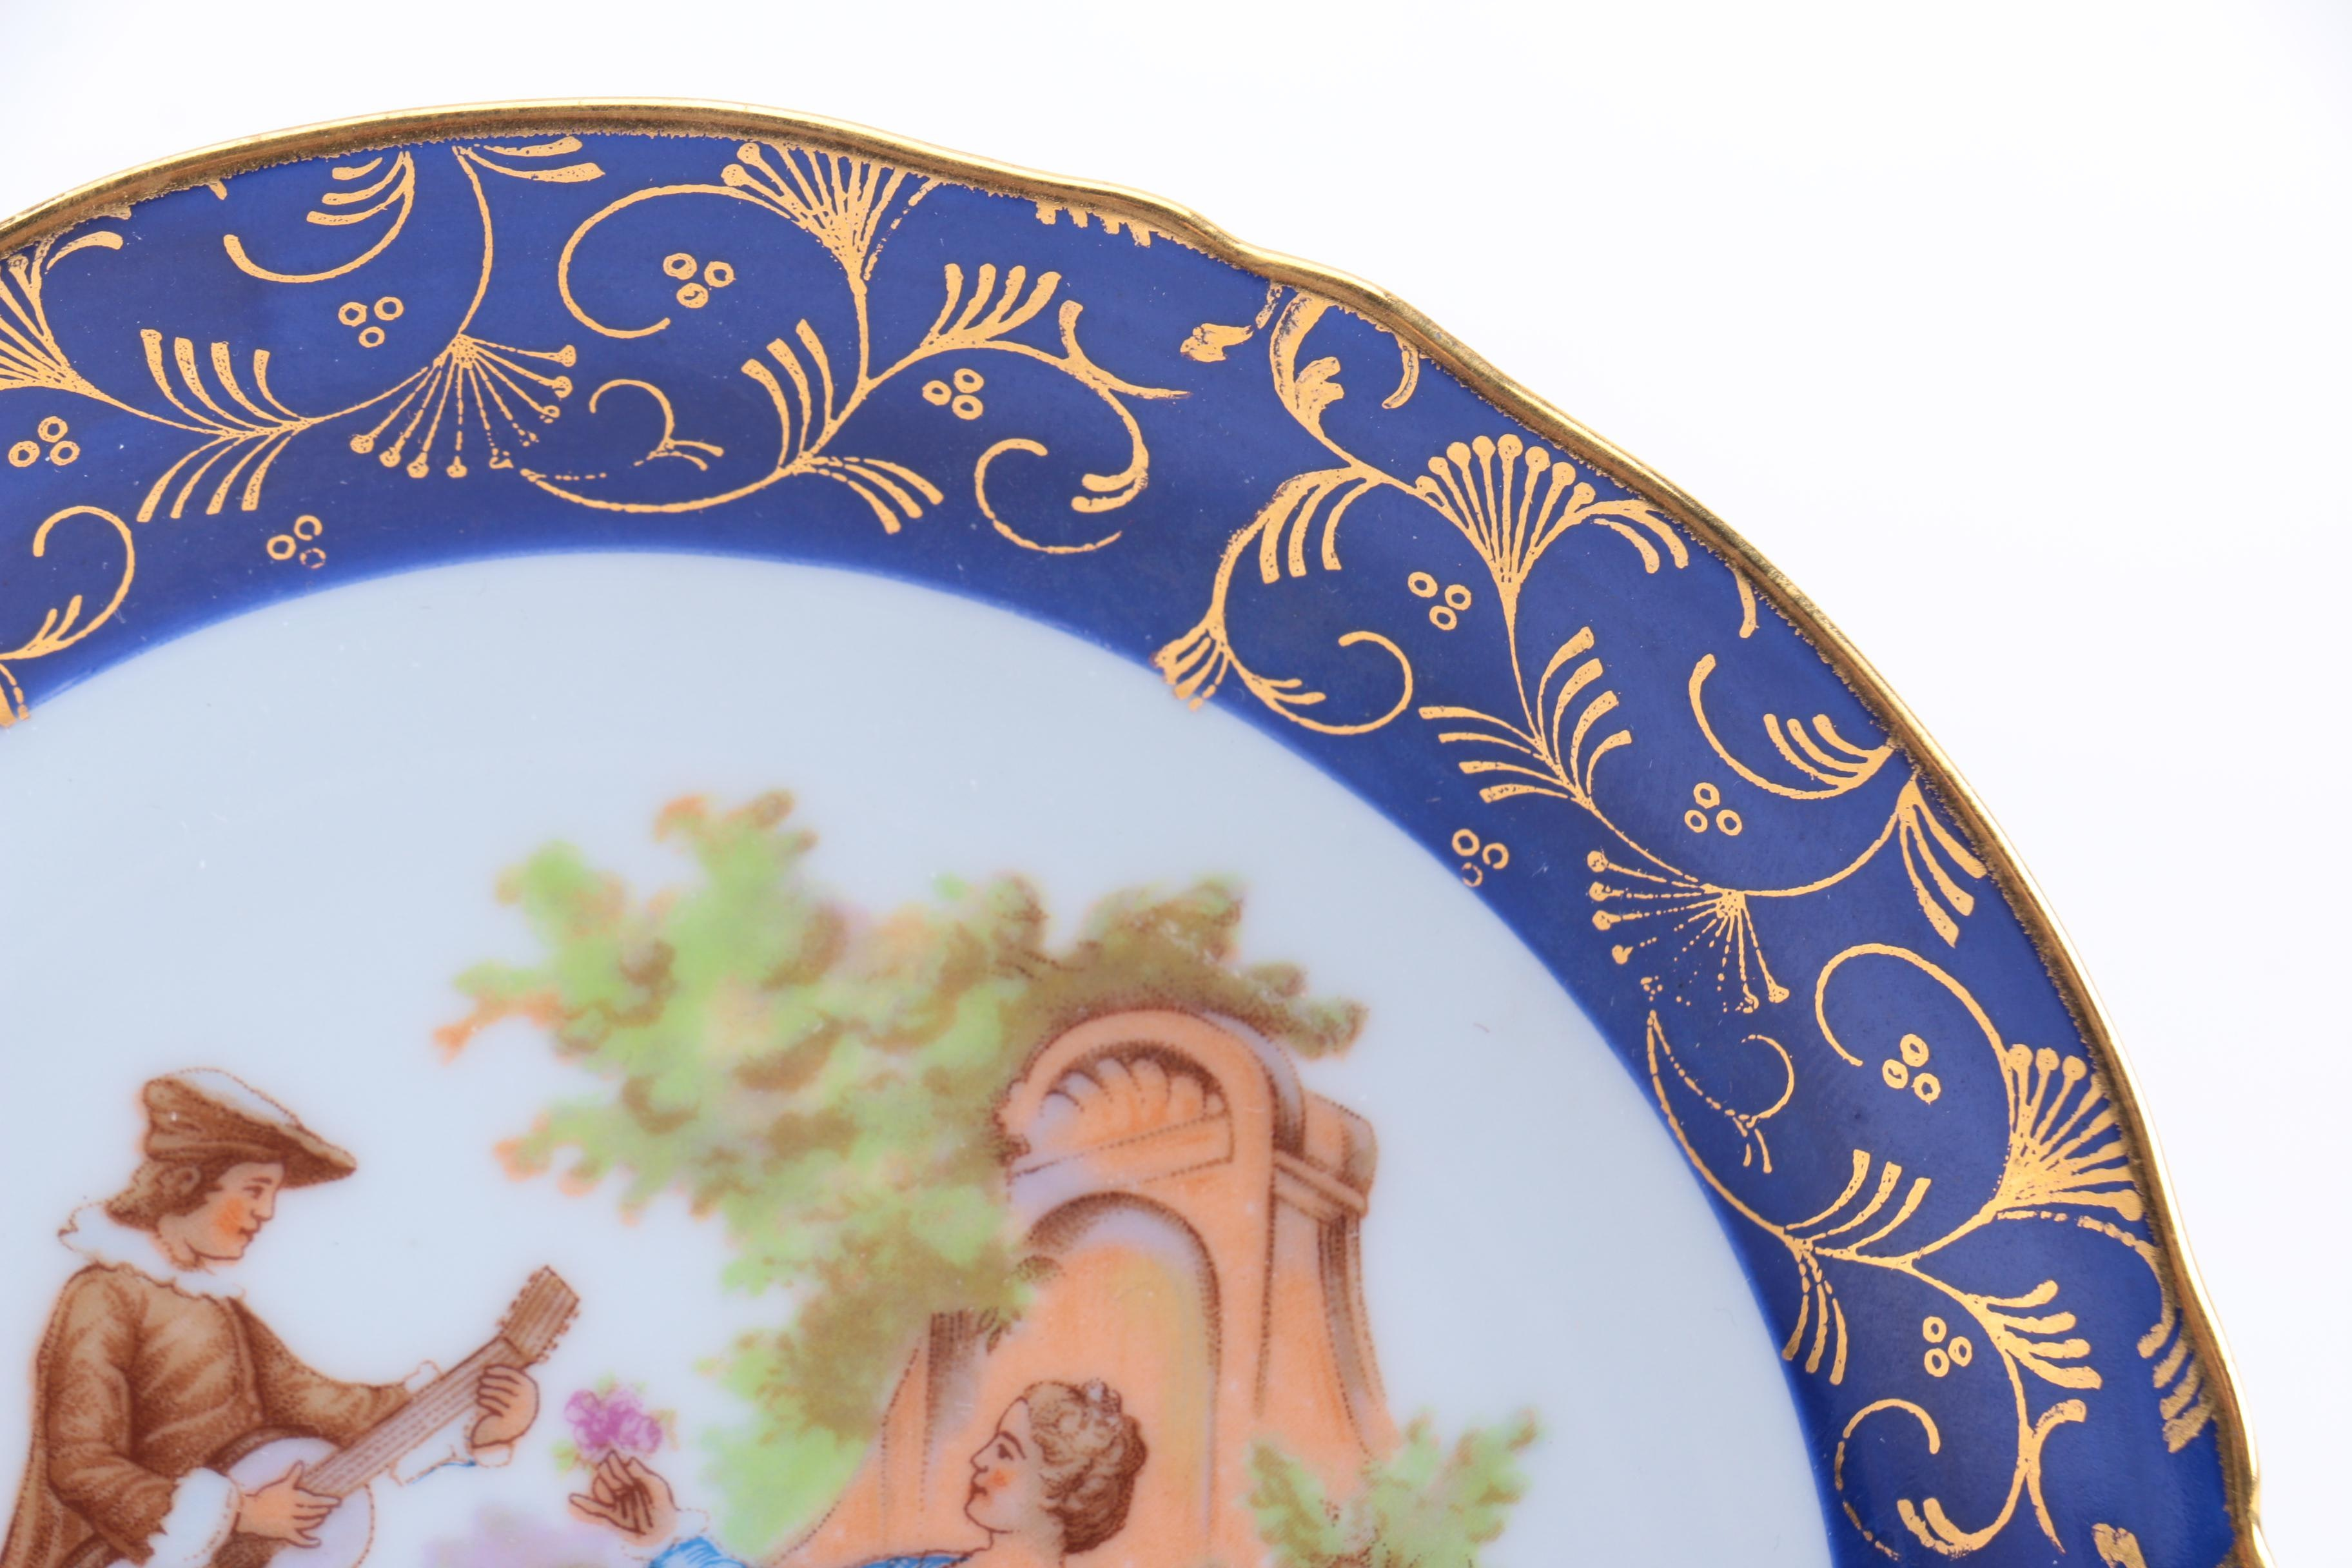 Limoges Porcelain Plates With Courting Couples Ebth